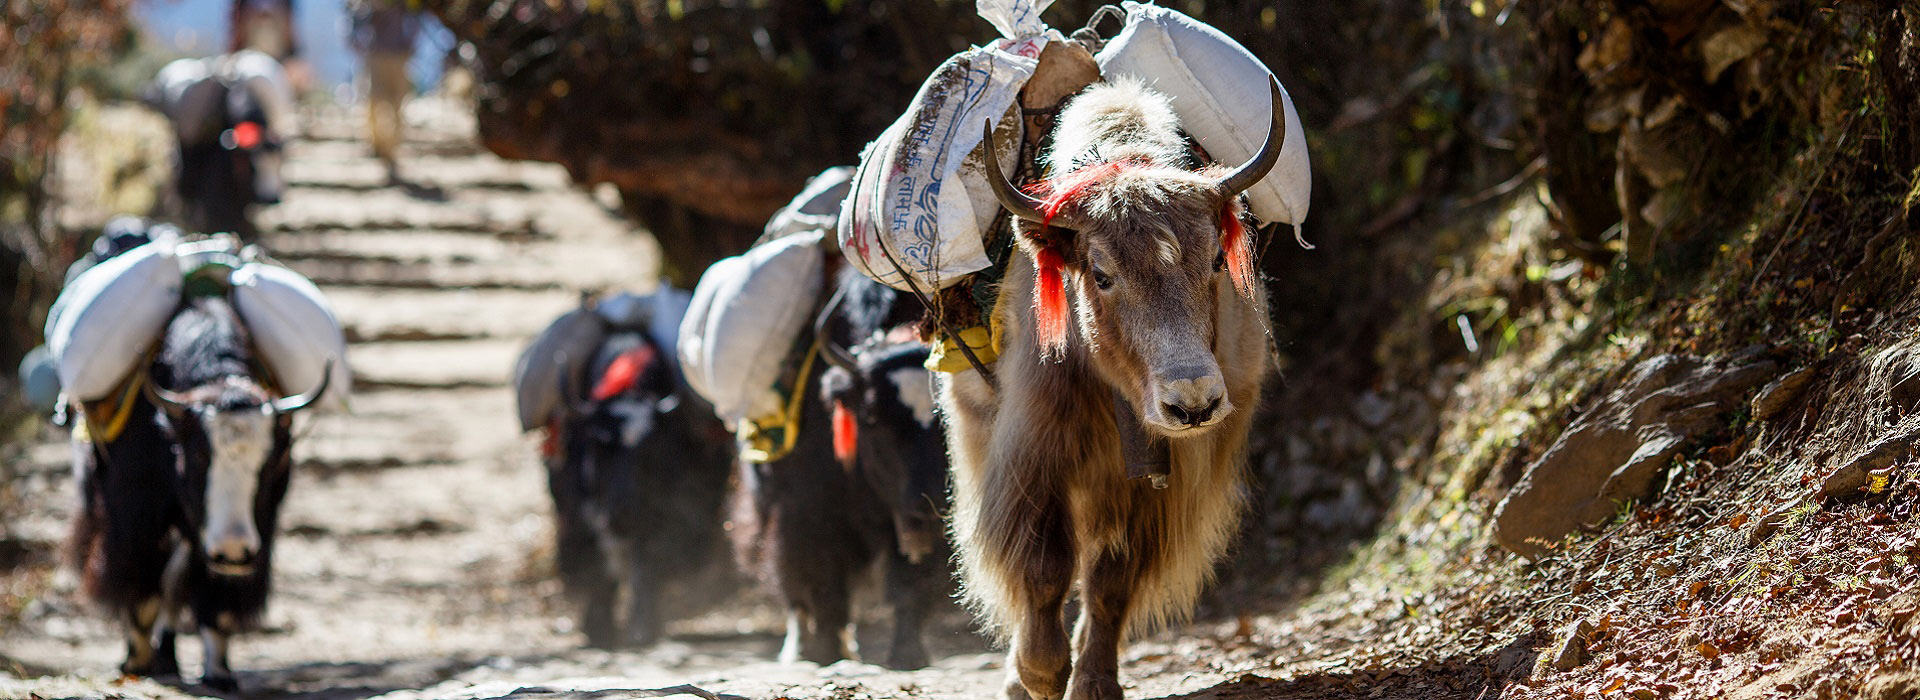 yaks_carrying_weight_in_nepal